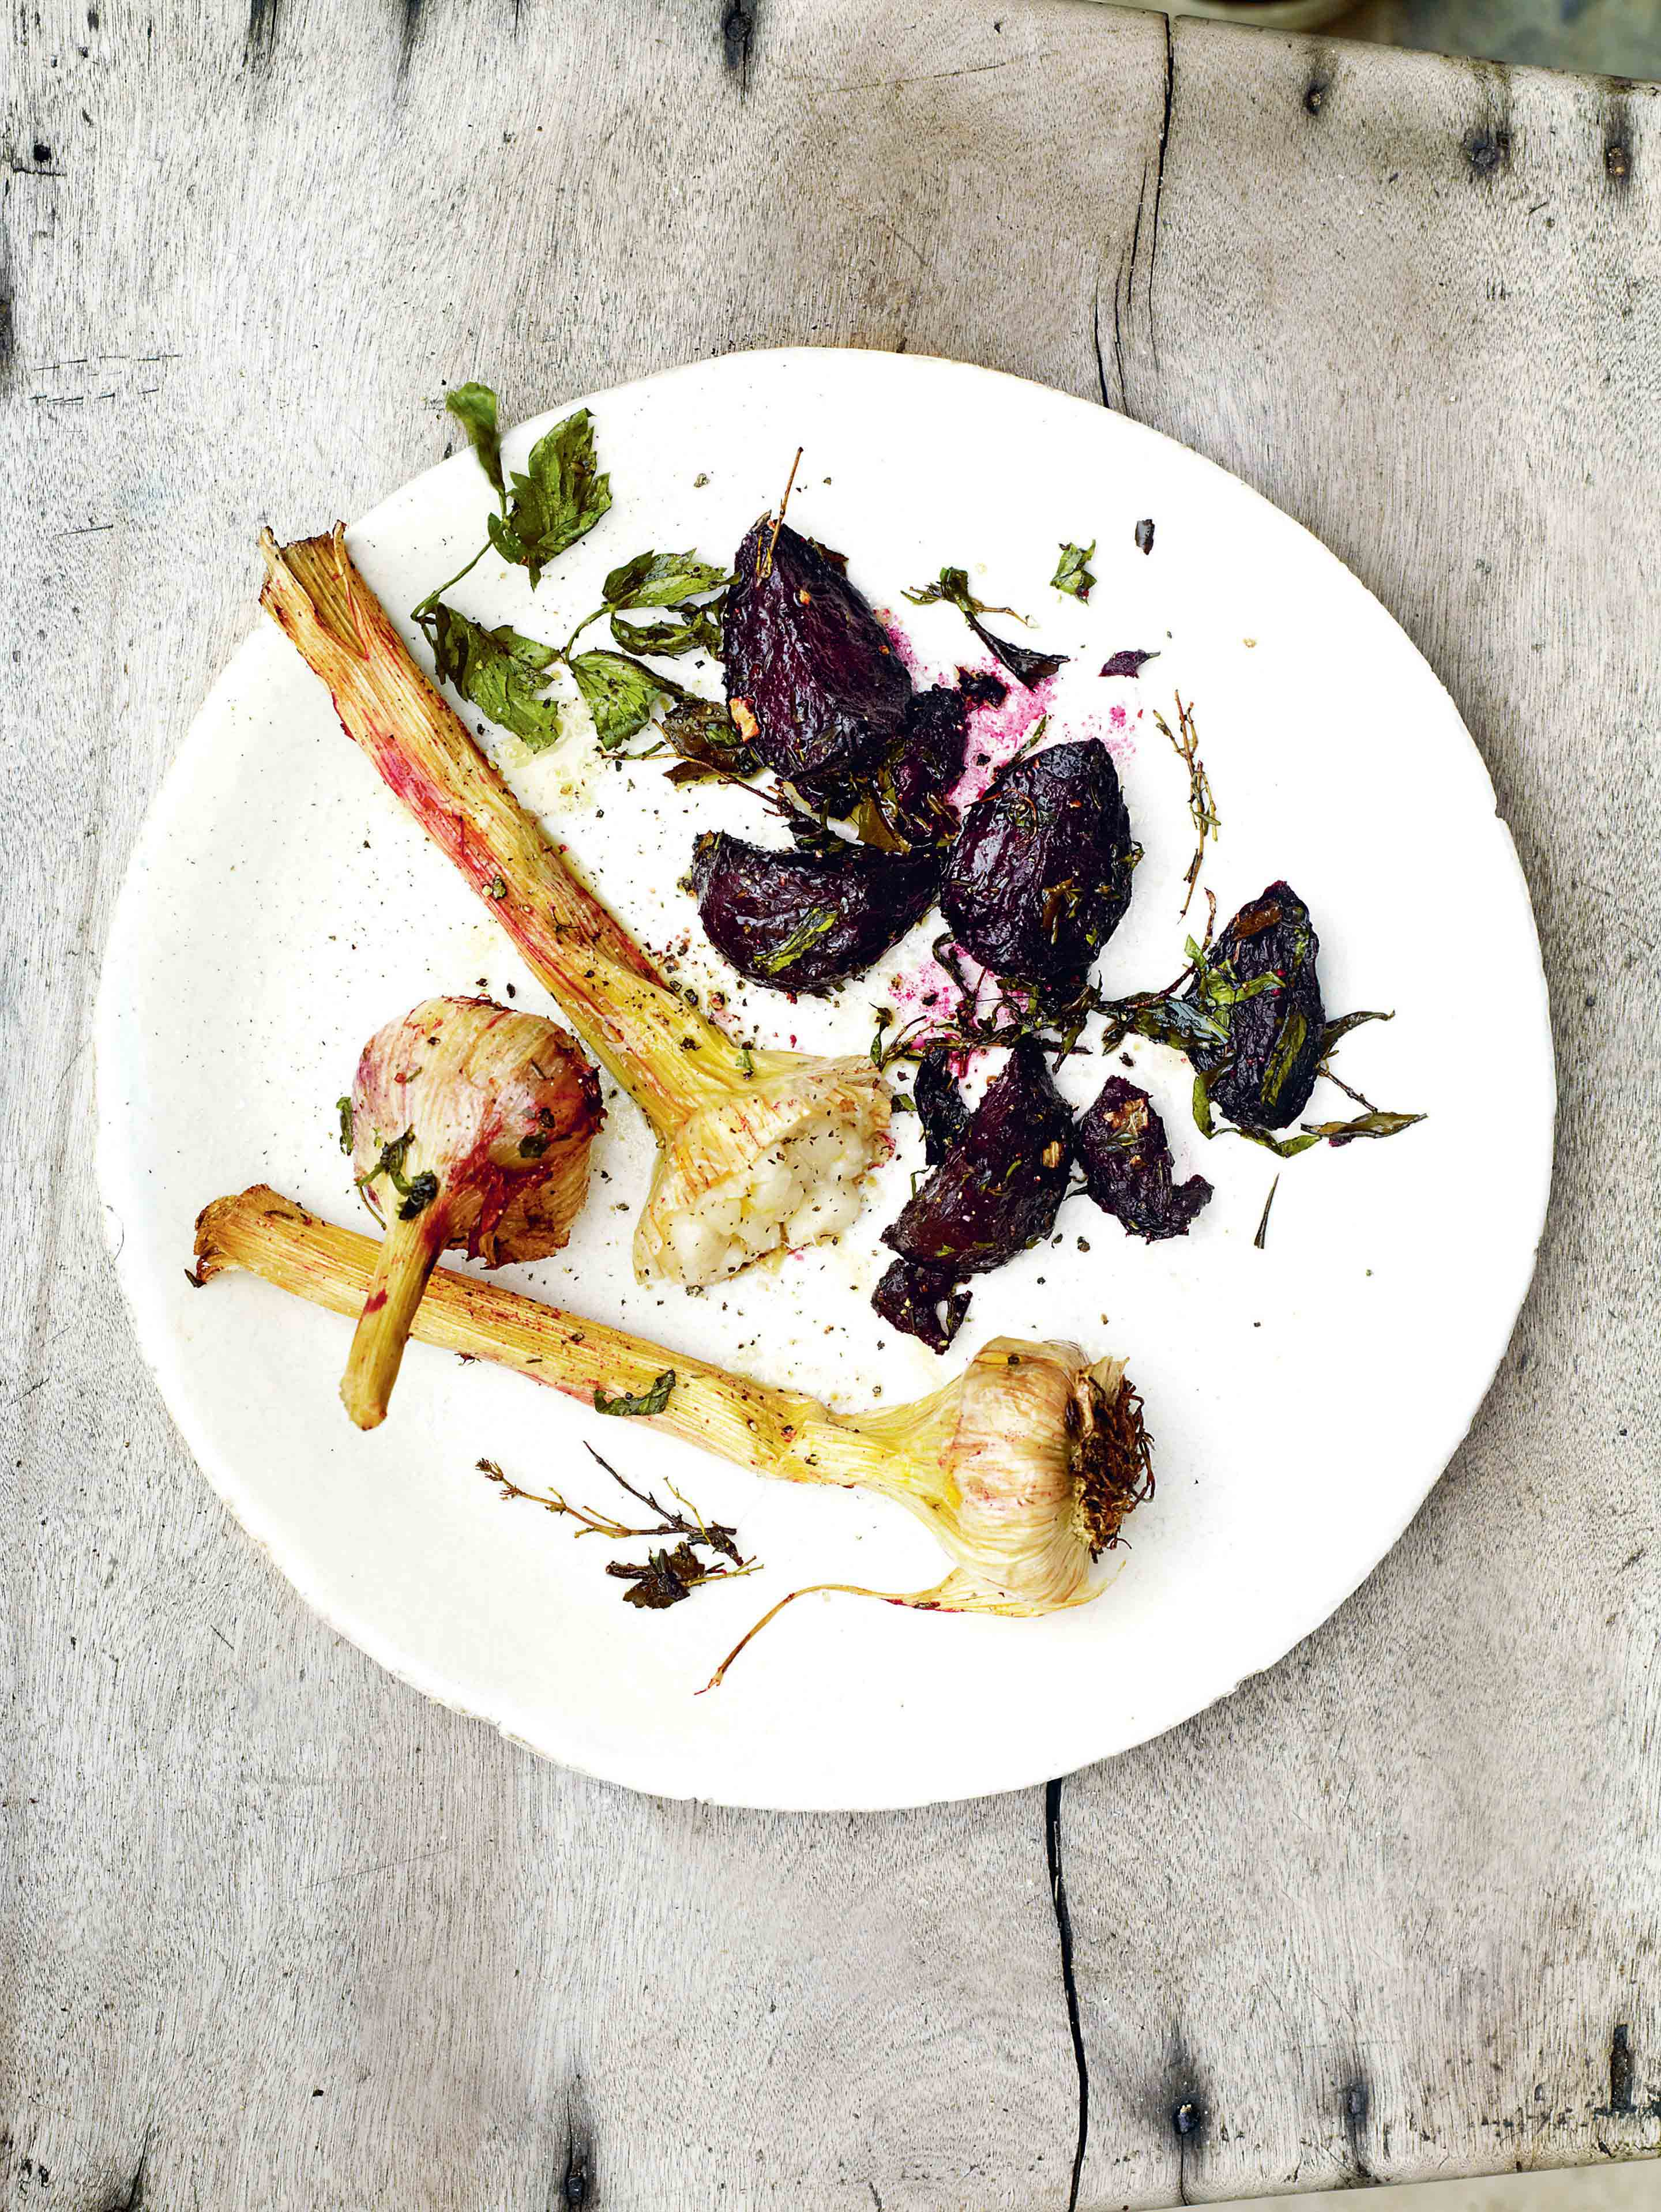 Roast beetroot & wet garlic with bay, lovage & thyme